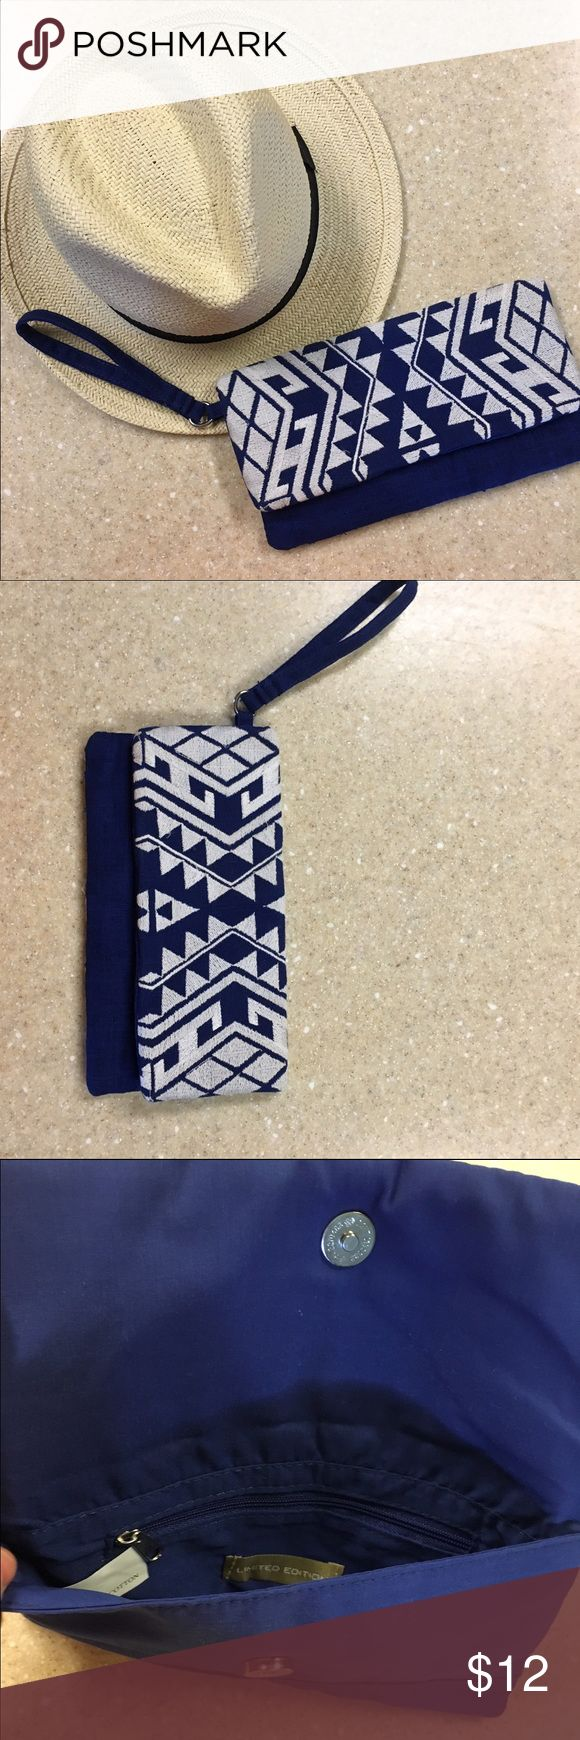 Blue and white clutch Super cute blue and white clutch. Never used. The material is cloth. Bags Clutches & Wristlets